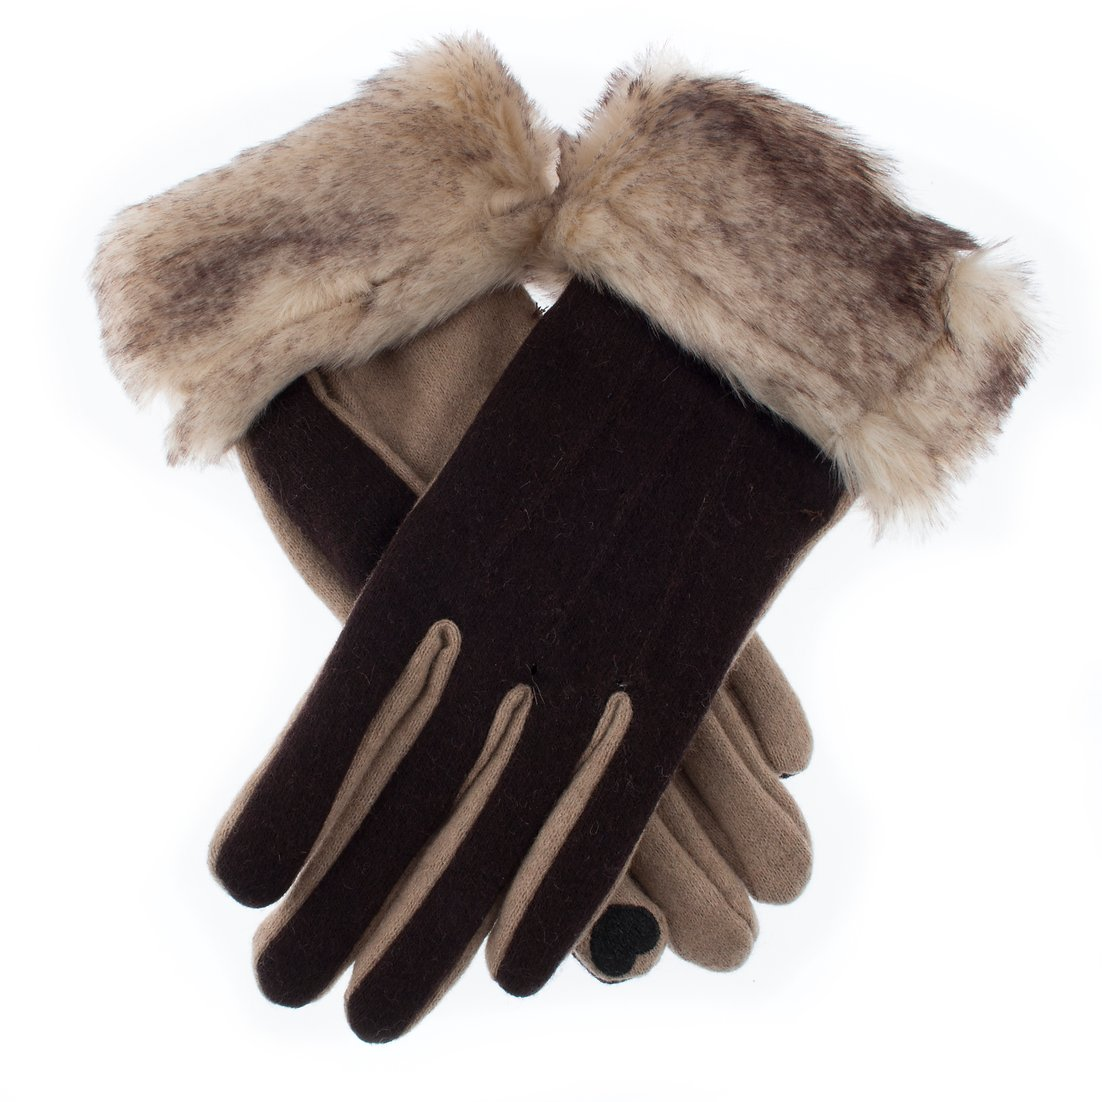 Dents wool glove with 'Touchscreen techology', brown